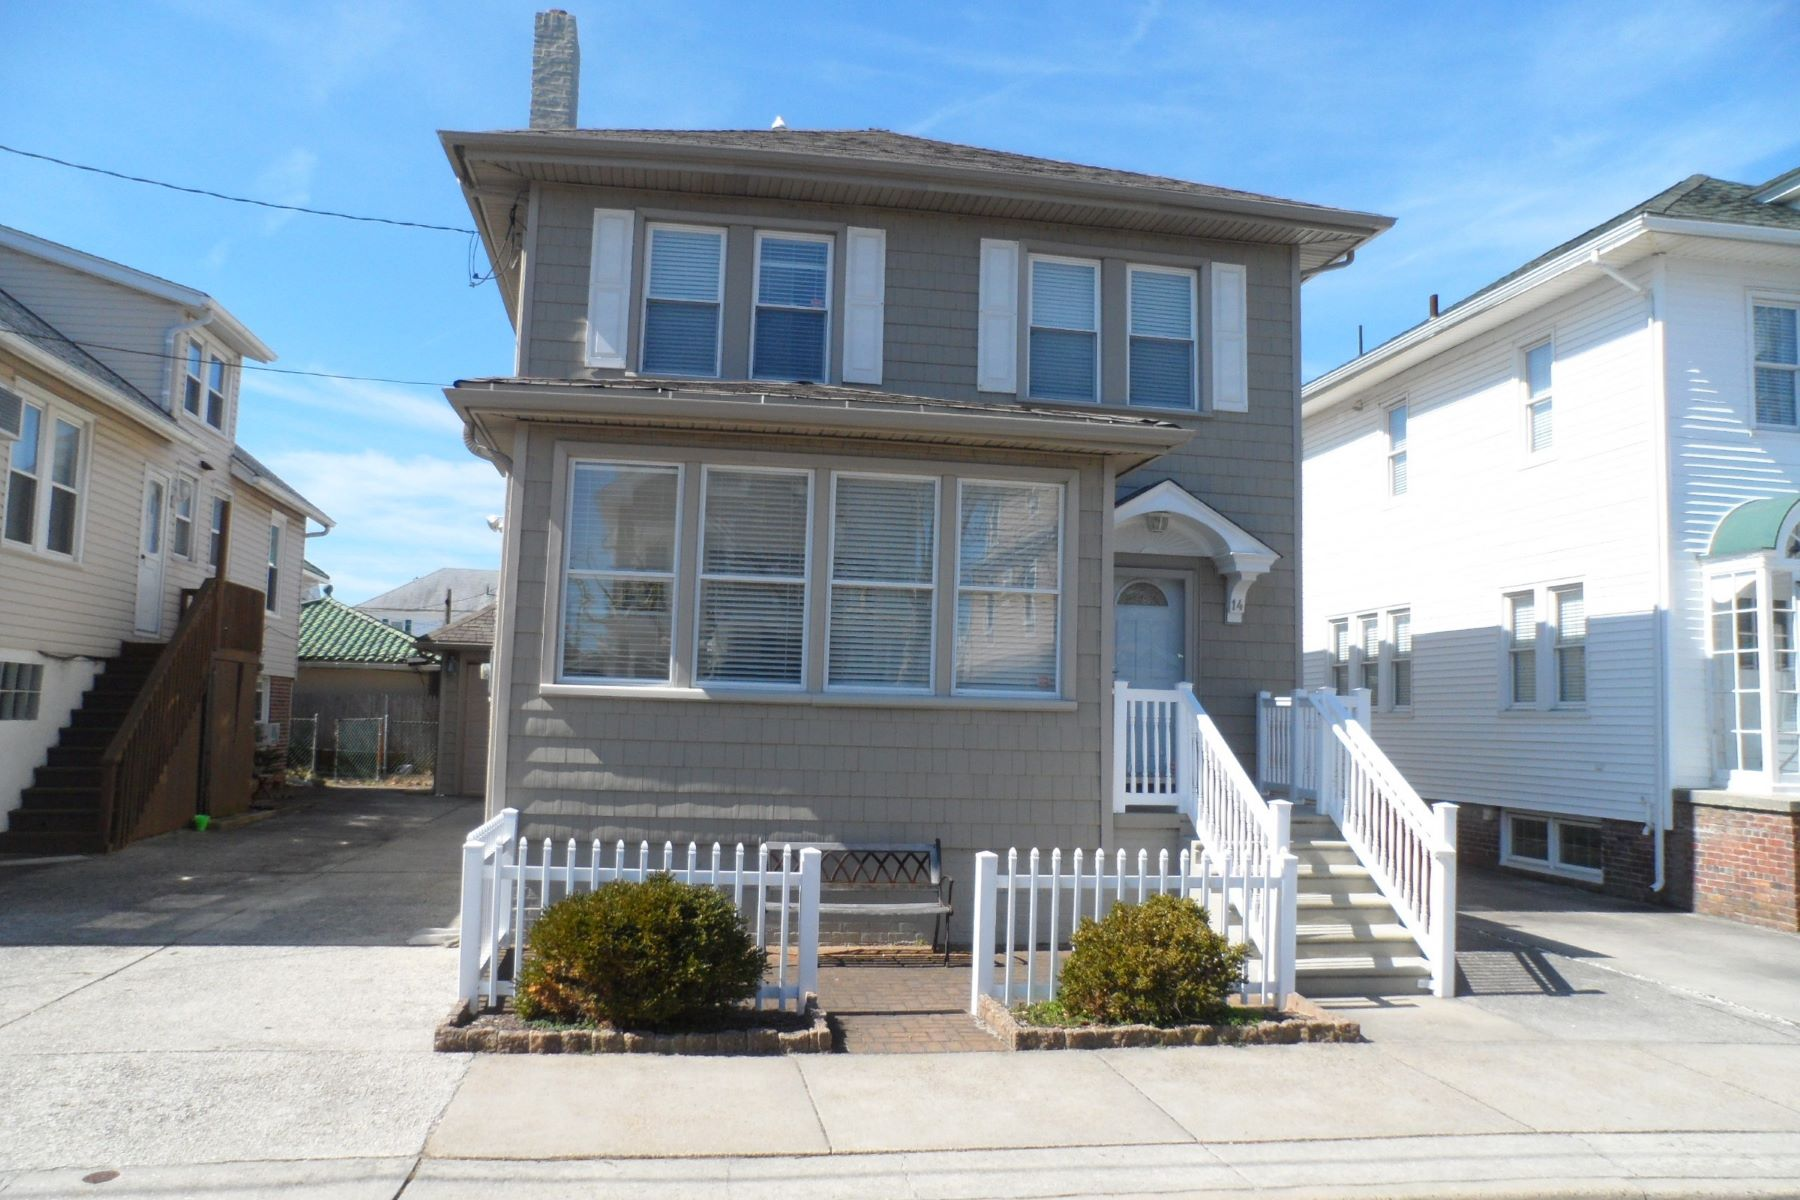 Single Family Homes for Sale at 14 S Lafayette Ave Ventnor, New Jersey 08406 United States